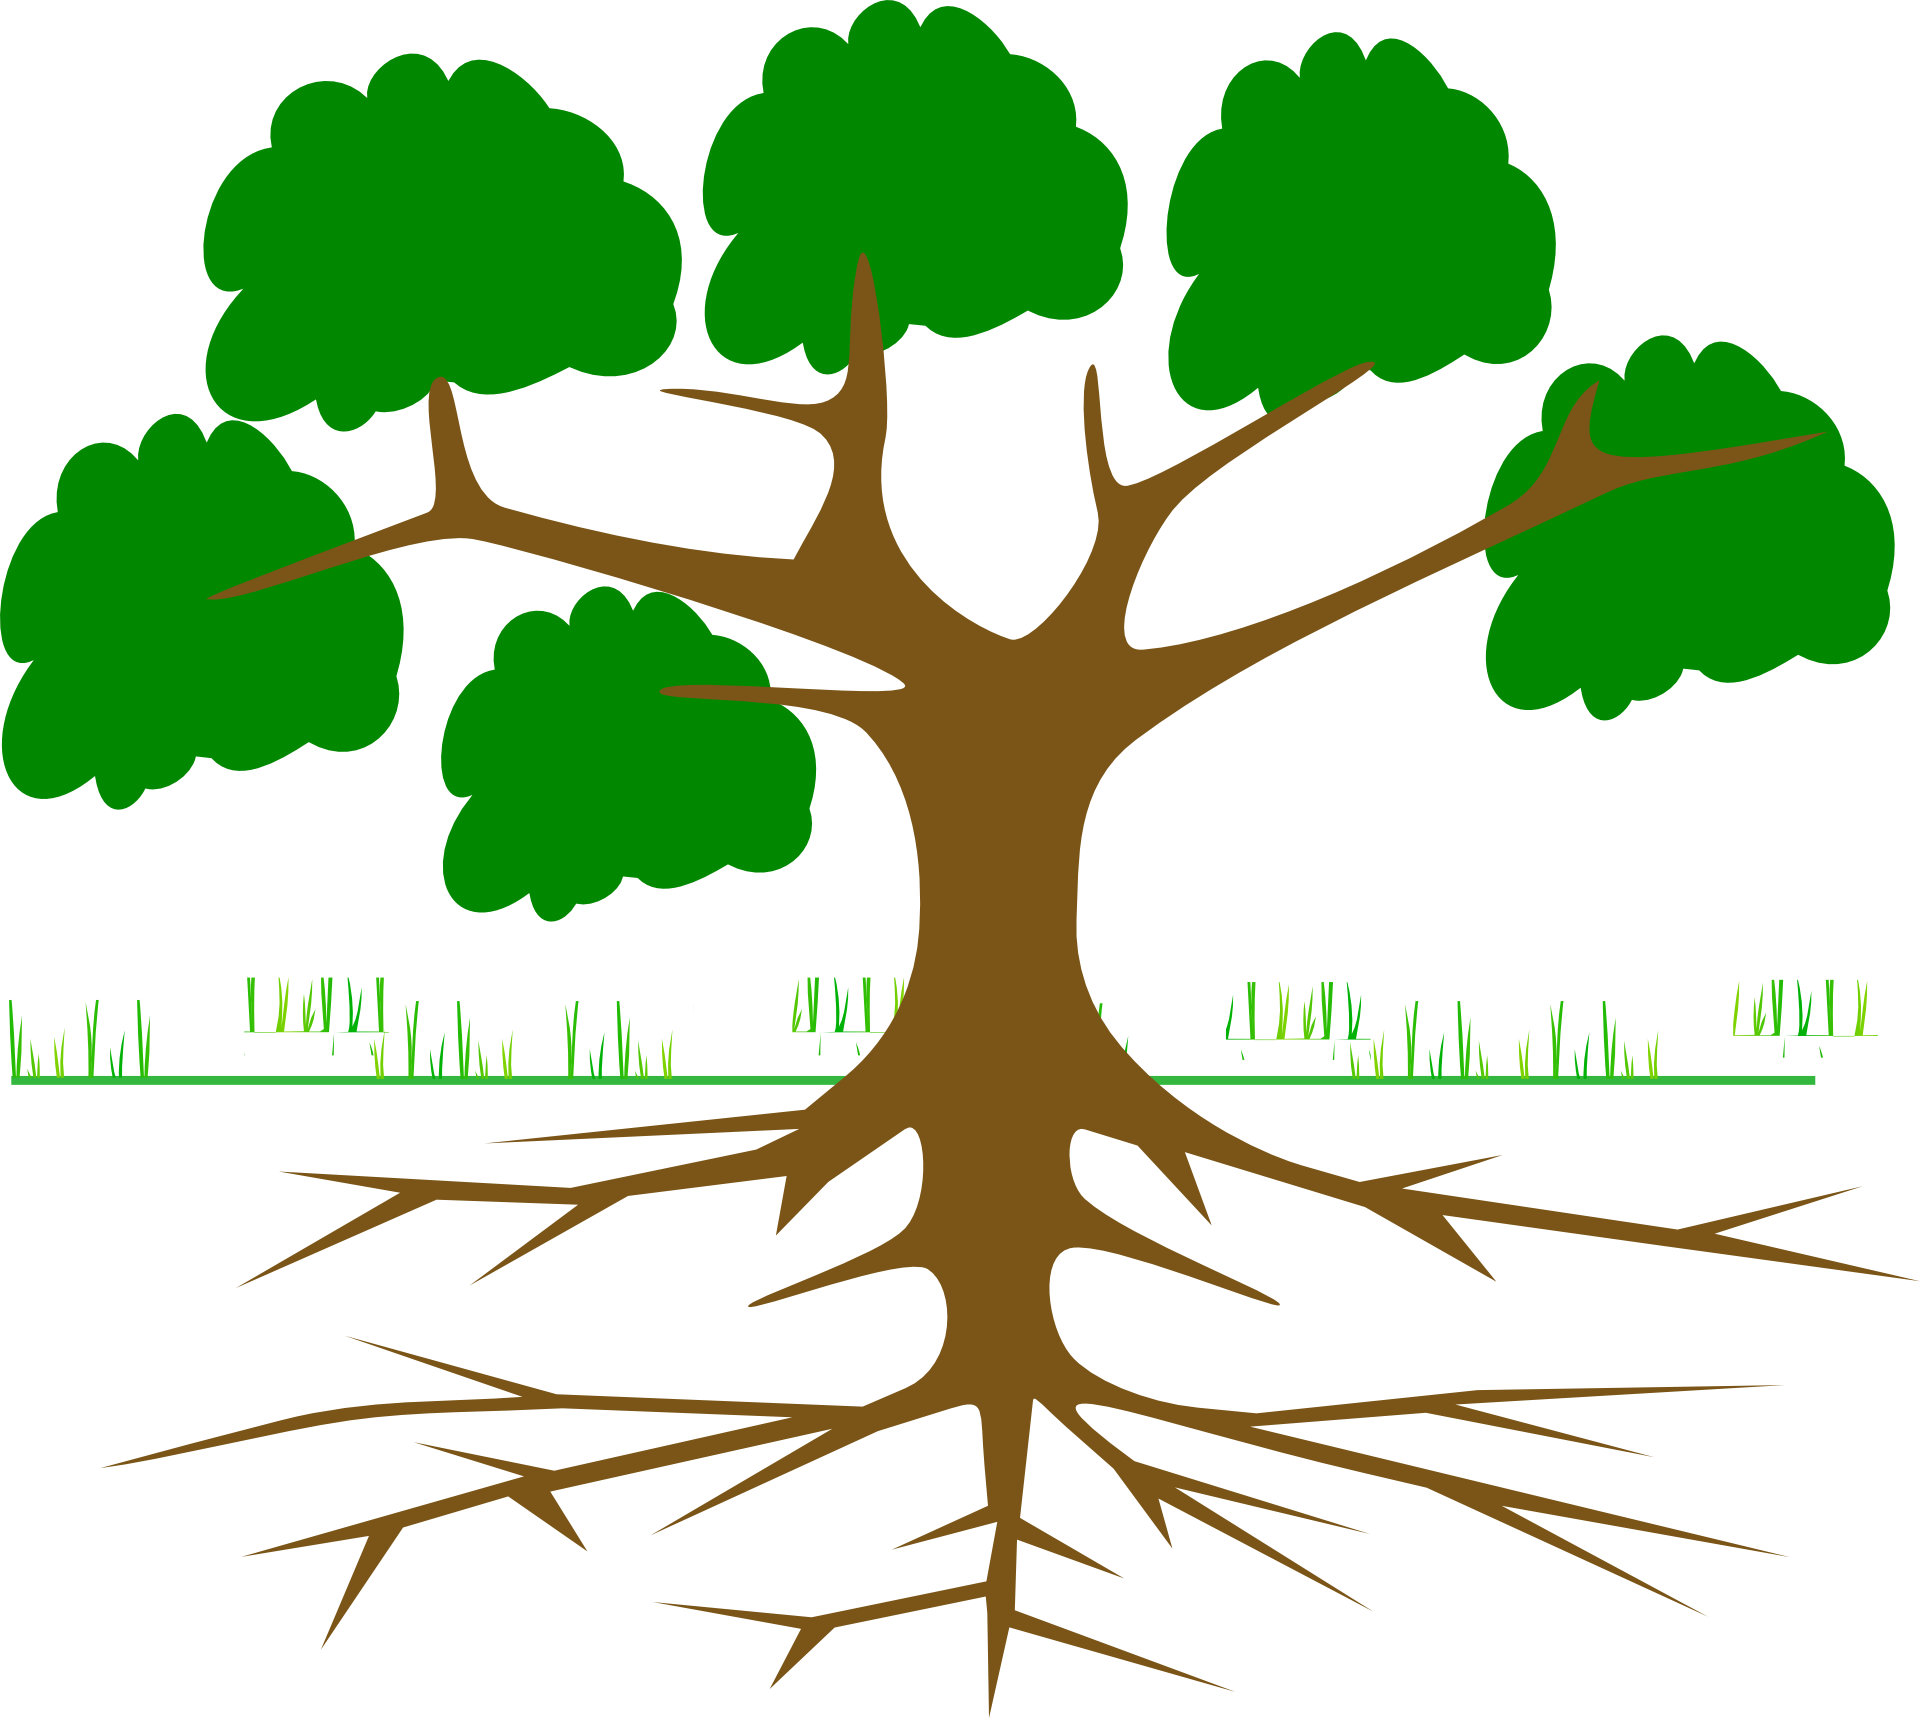 Tree felling clipart image freeuse download Transplanting instead of felling can salvage Delhi's green cover ... image freeuse download